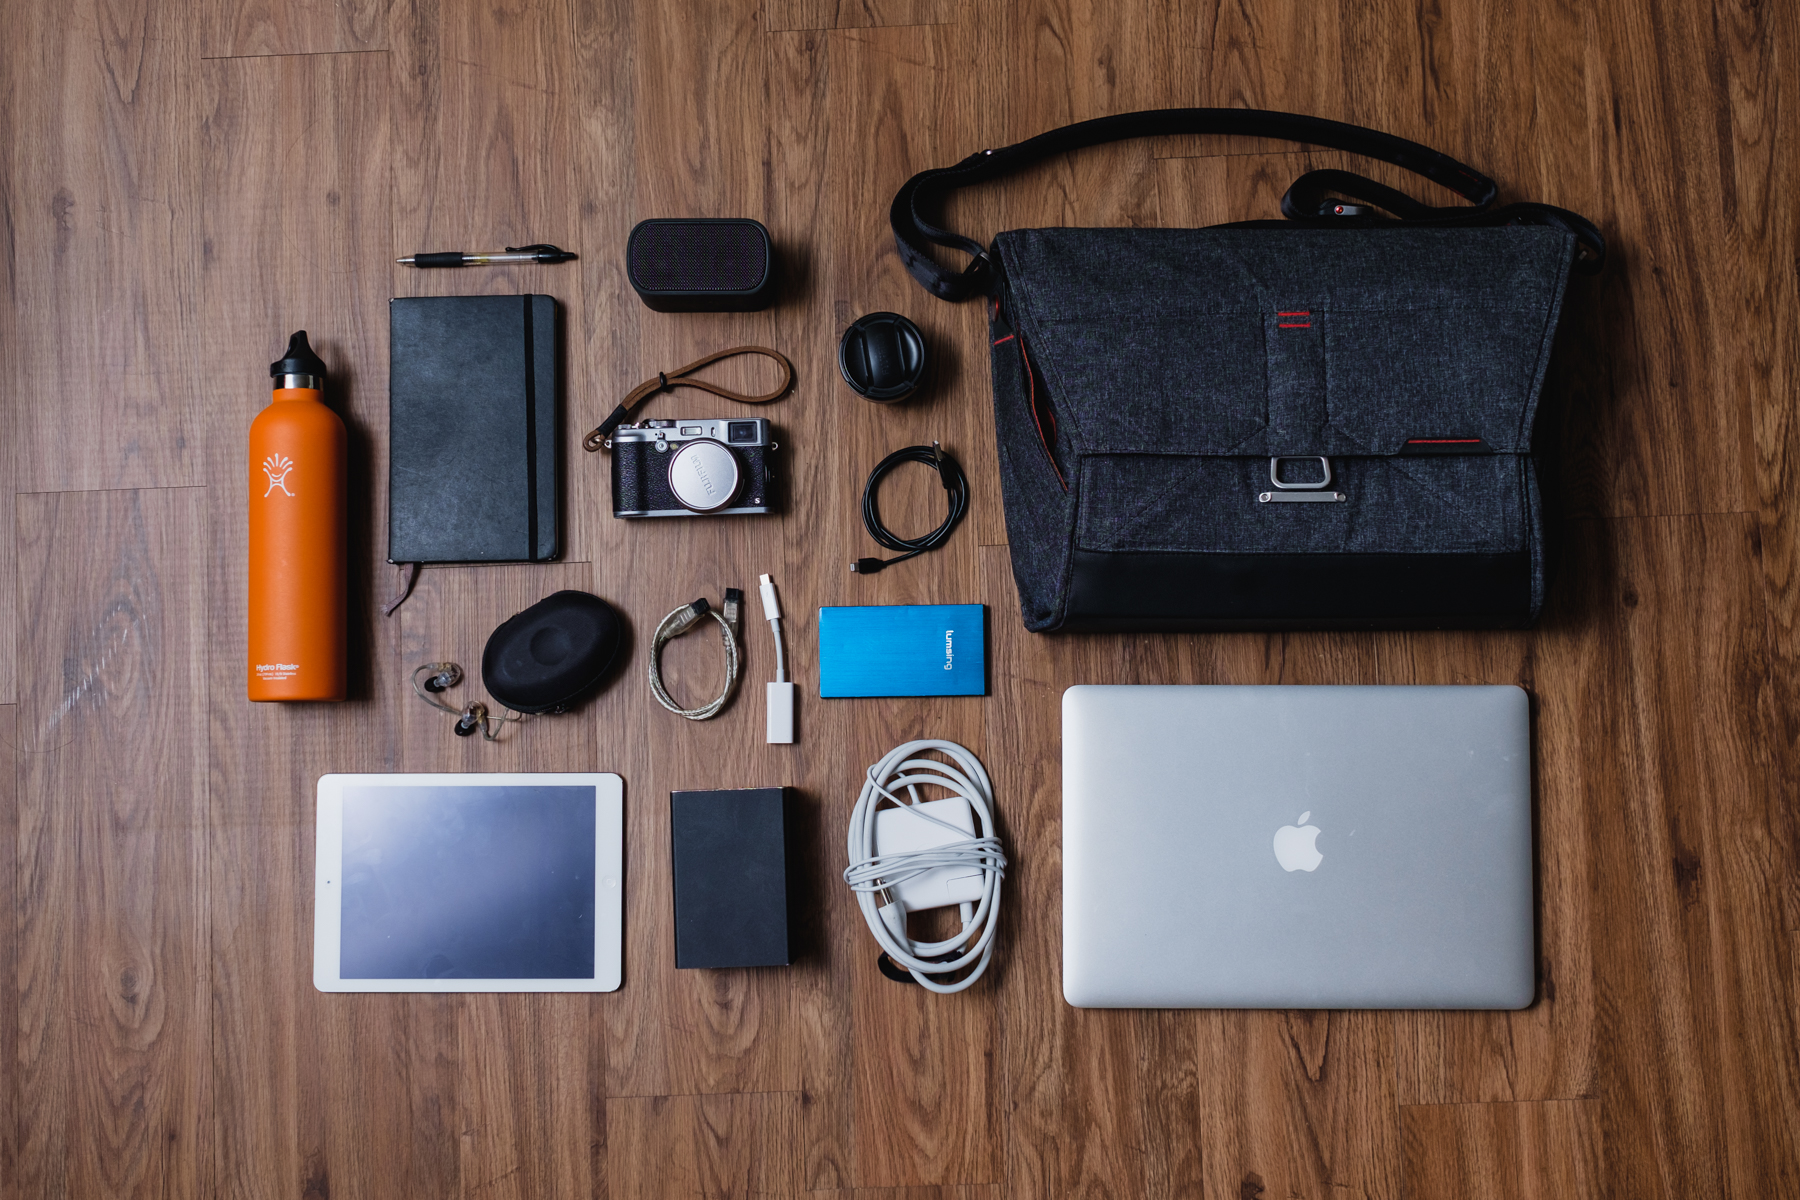 "This is my photo shoot day bag 'if my car was on fire, grab this bag' - Hydro Flask water bottle, Moleskine Notebook, Pilot G-2 Pen, Shure SE535 Earphones, Apple iPad Air, UE Bluetooth Speaker,  Fujifilm X100s , Fujifilm  TCL-X100  Conversion Lens  , Apple Lighting to USB Cable, Cable for the Raid thunderbolt drive, OWC Raid 0 Drive, Portable battery,  Apple Macbook 15 "" & Charger."